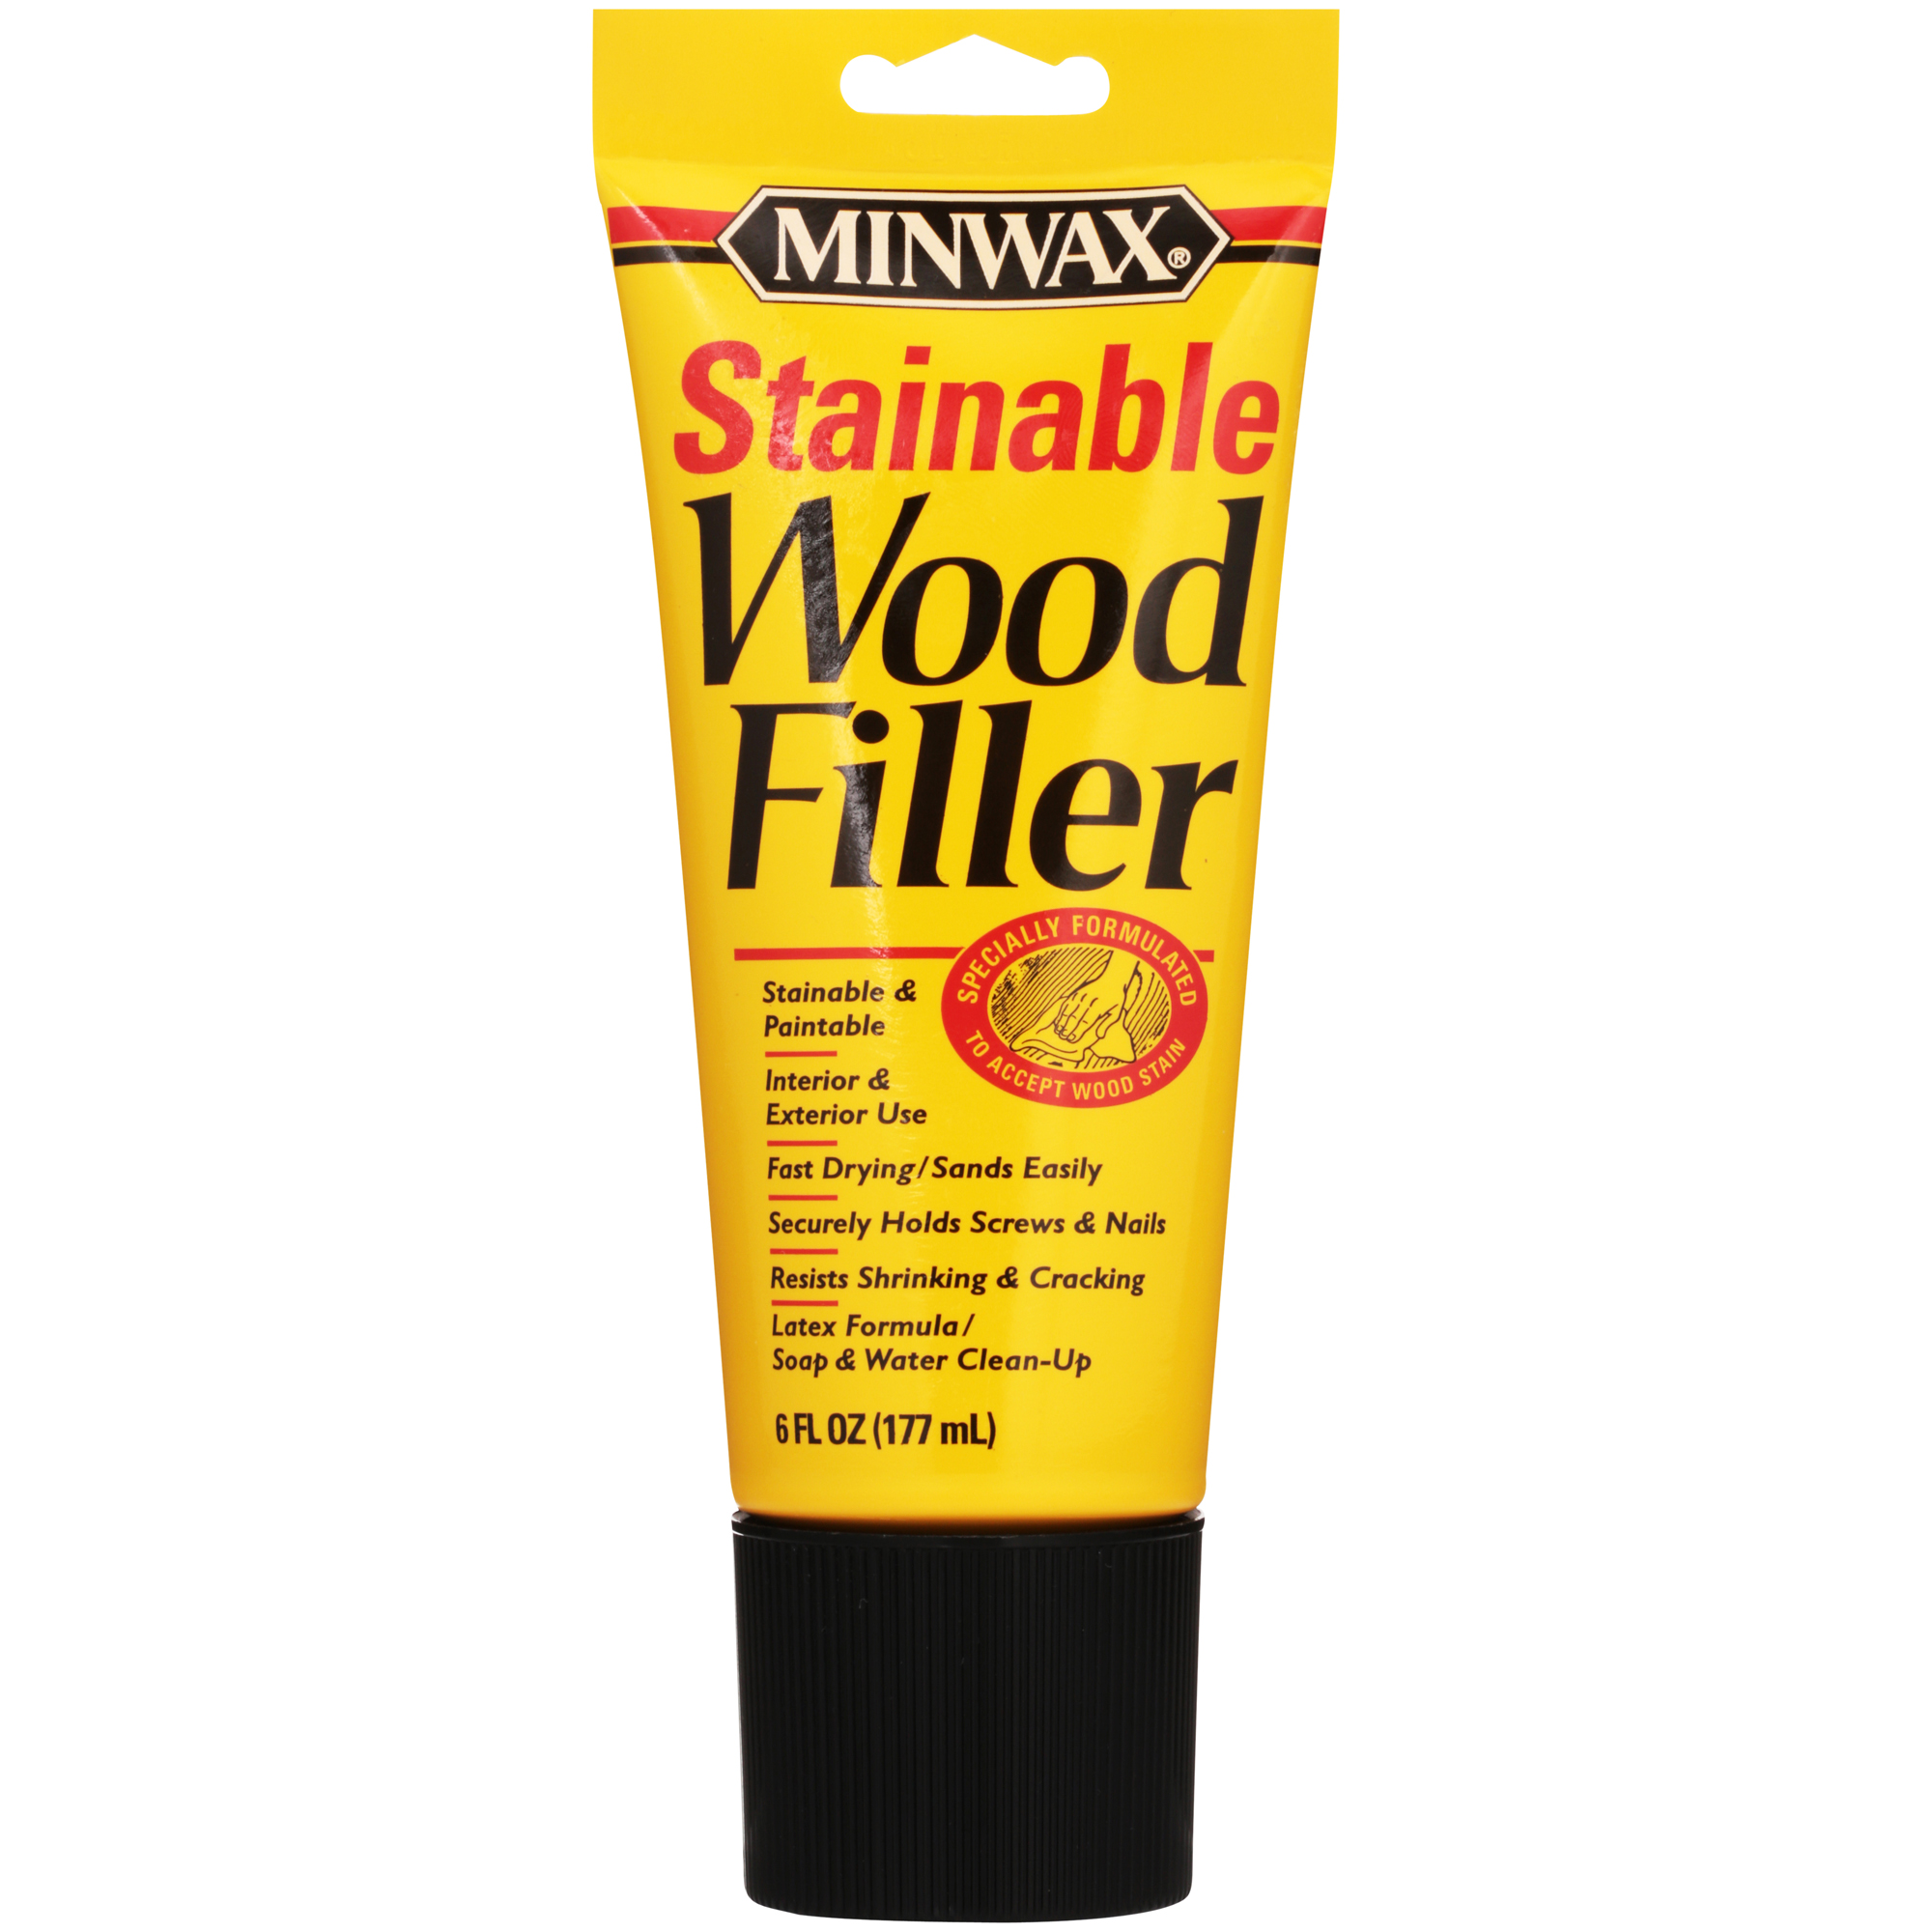 Minwax Stainable Wood Filler 6-Oz